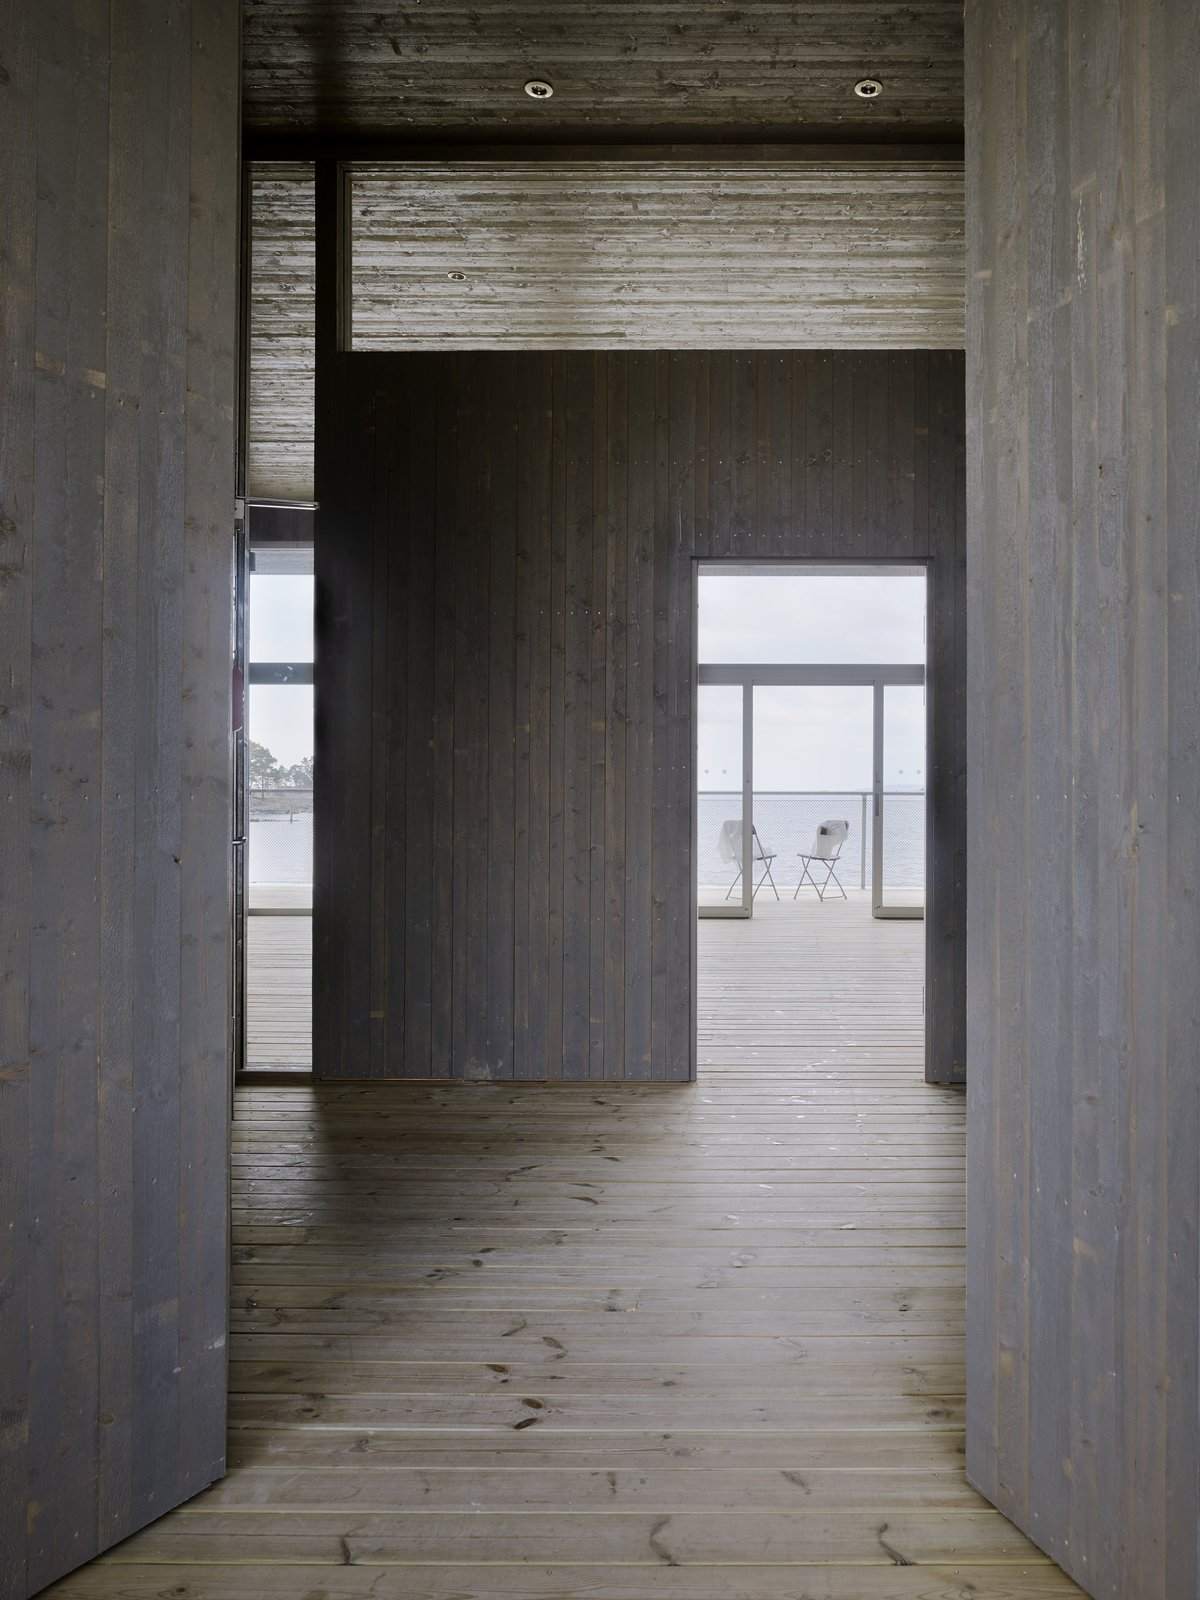 A Swedish Coastal Town Commissions an Otherworldly Bathhouse - Photo 5 of 6